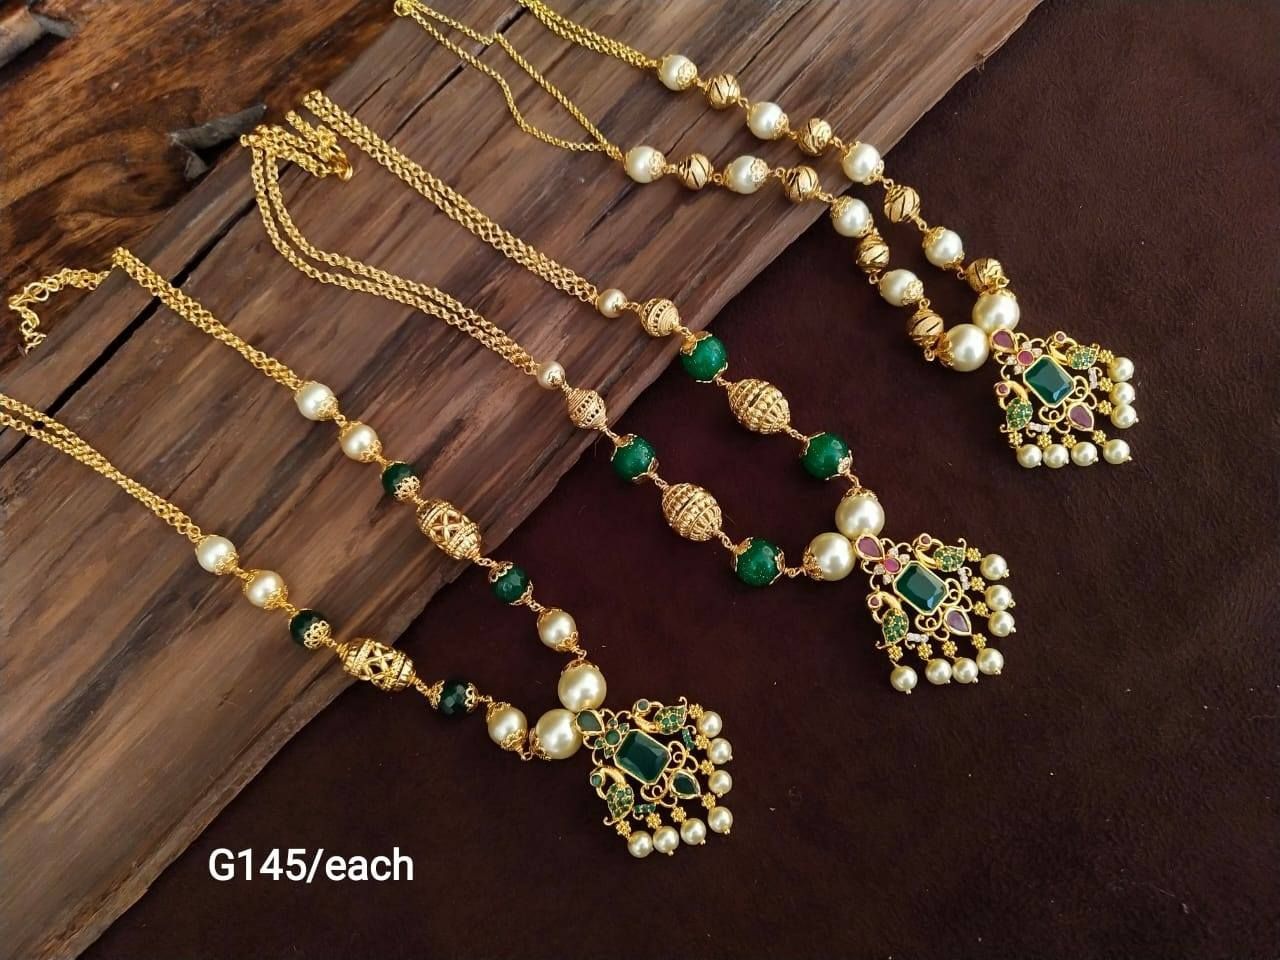 Beautiful one gram gold simple necklace with Lakshmi devi pendant and pearl beads.